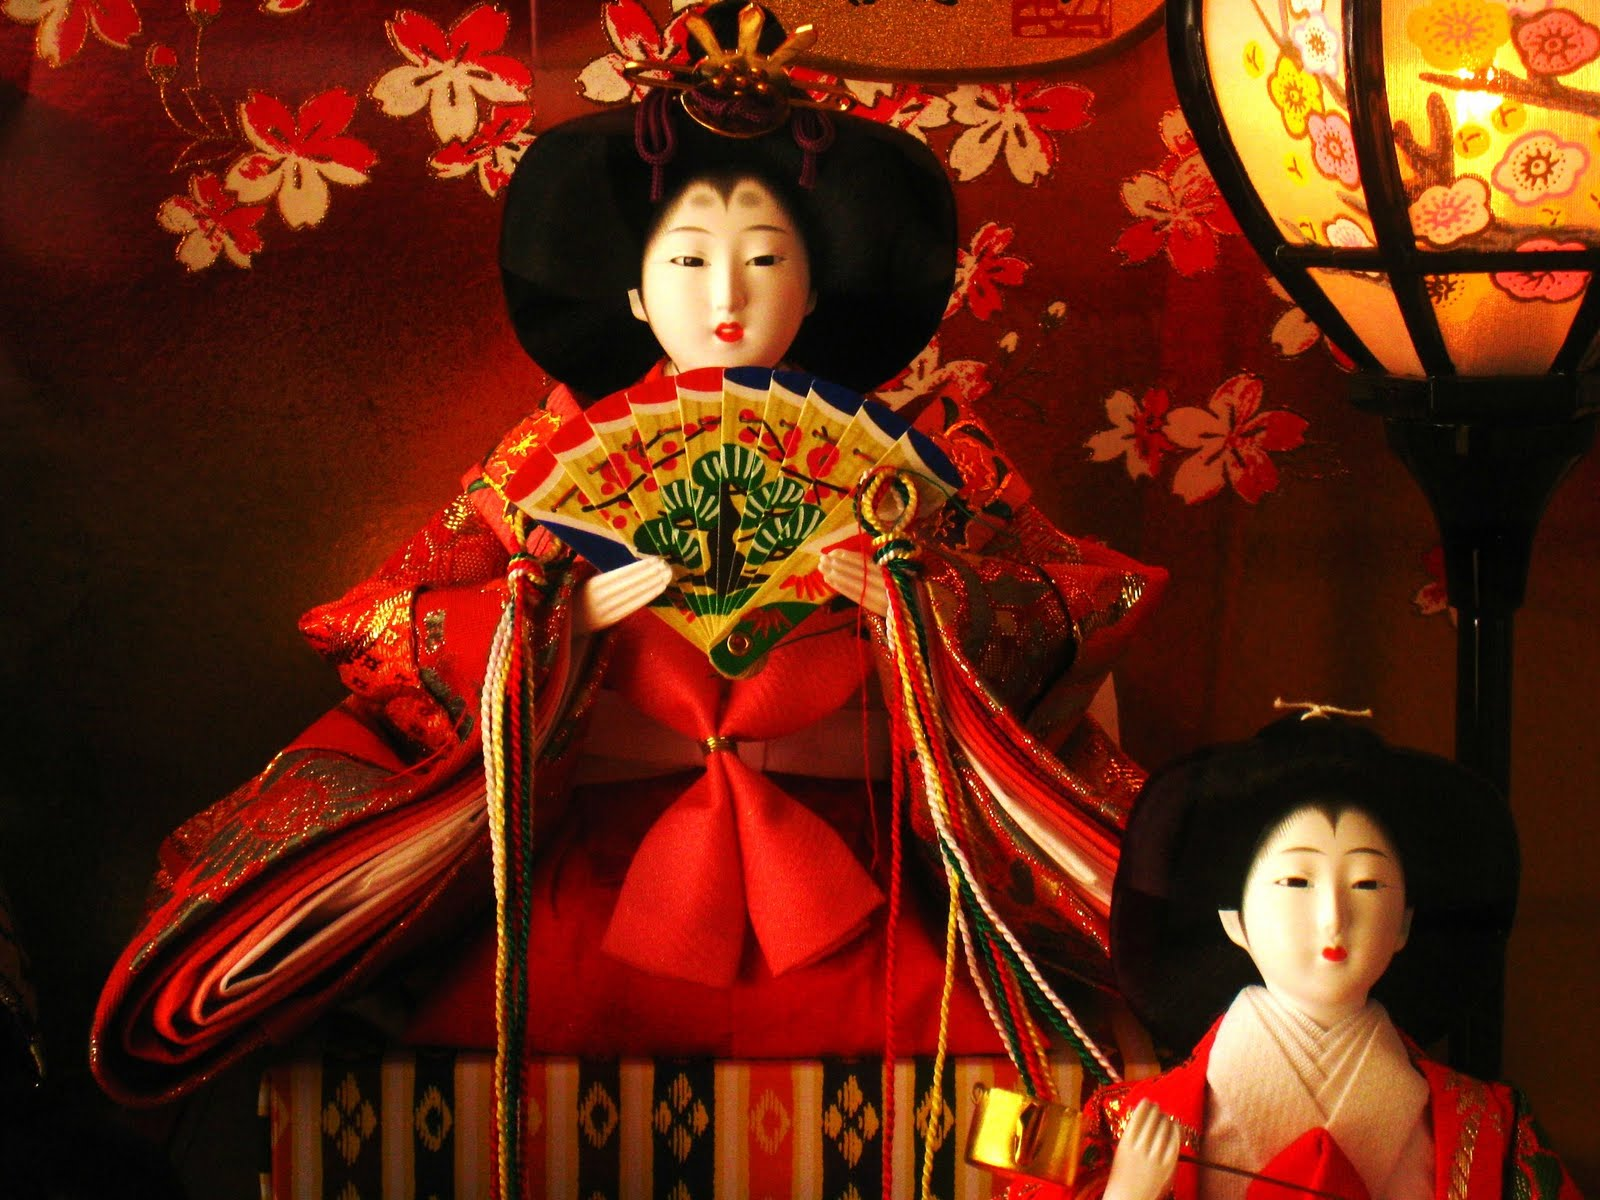 the-japanese-doll-festival-hinamatsuri-or-girls-day-japanese-hina.JPG